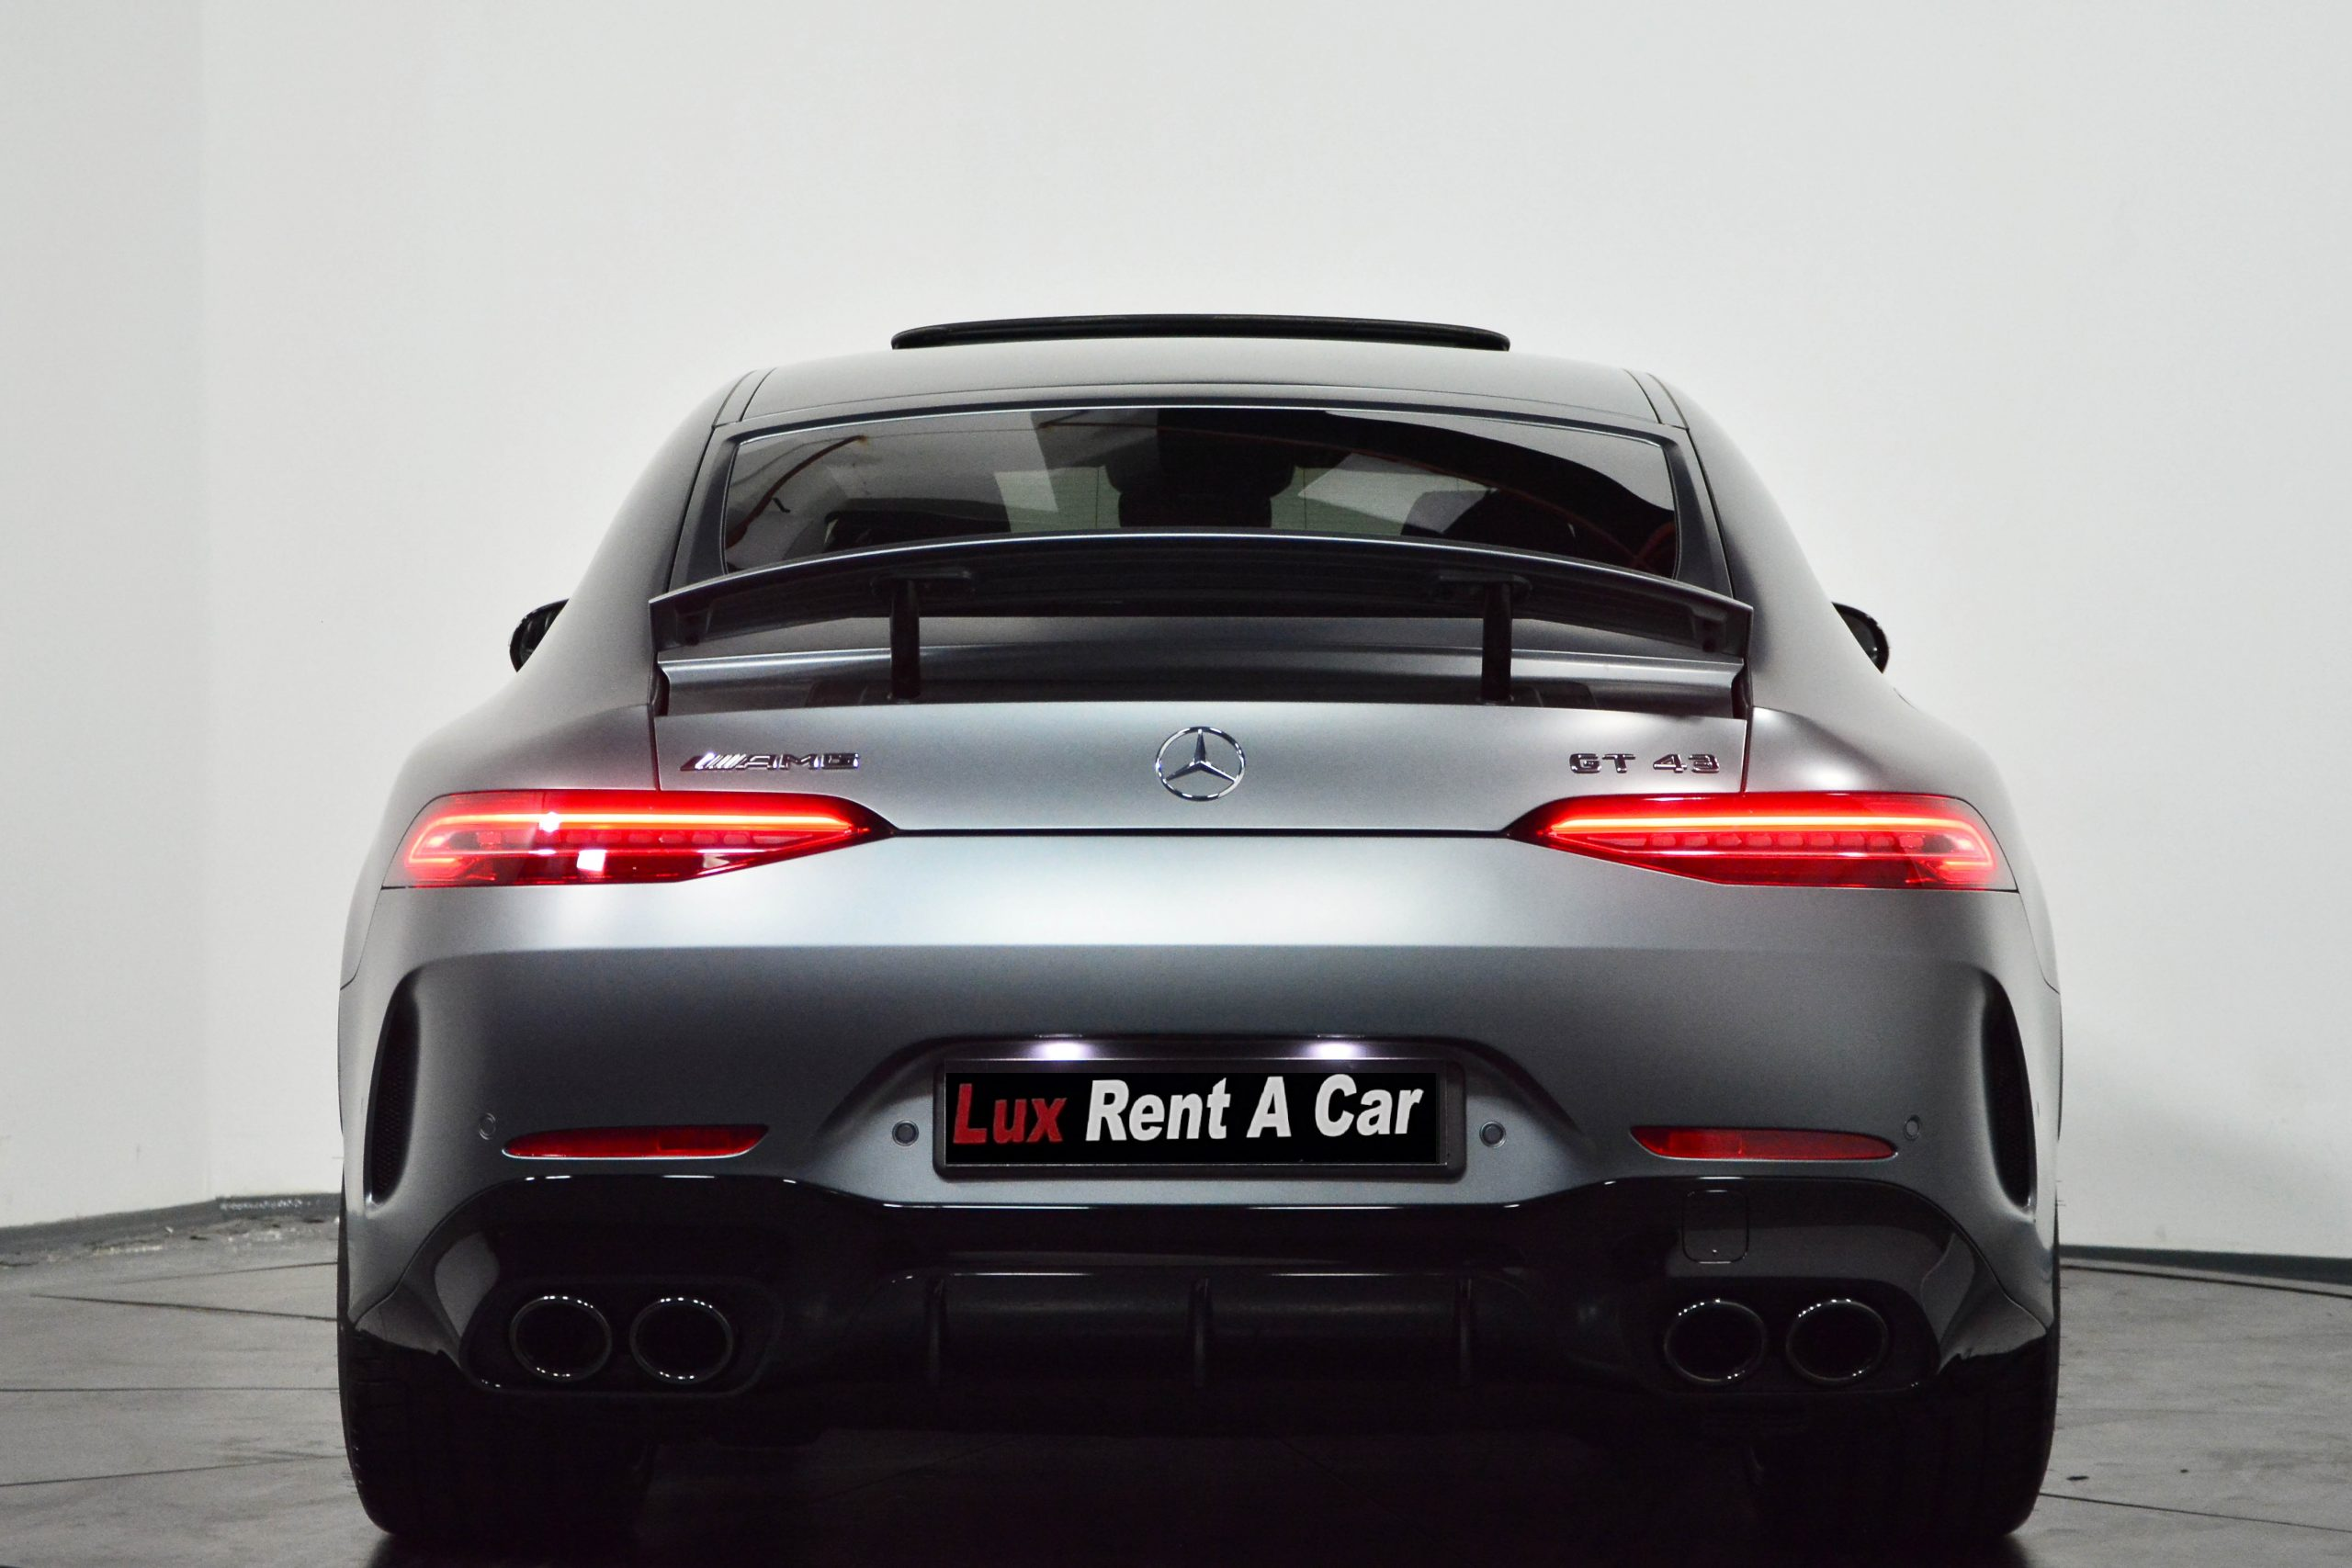 05 scaled - MERCEDES AMG GT43